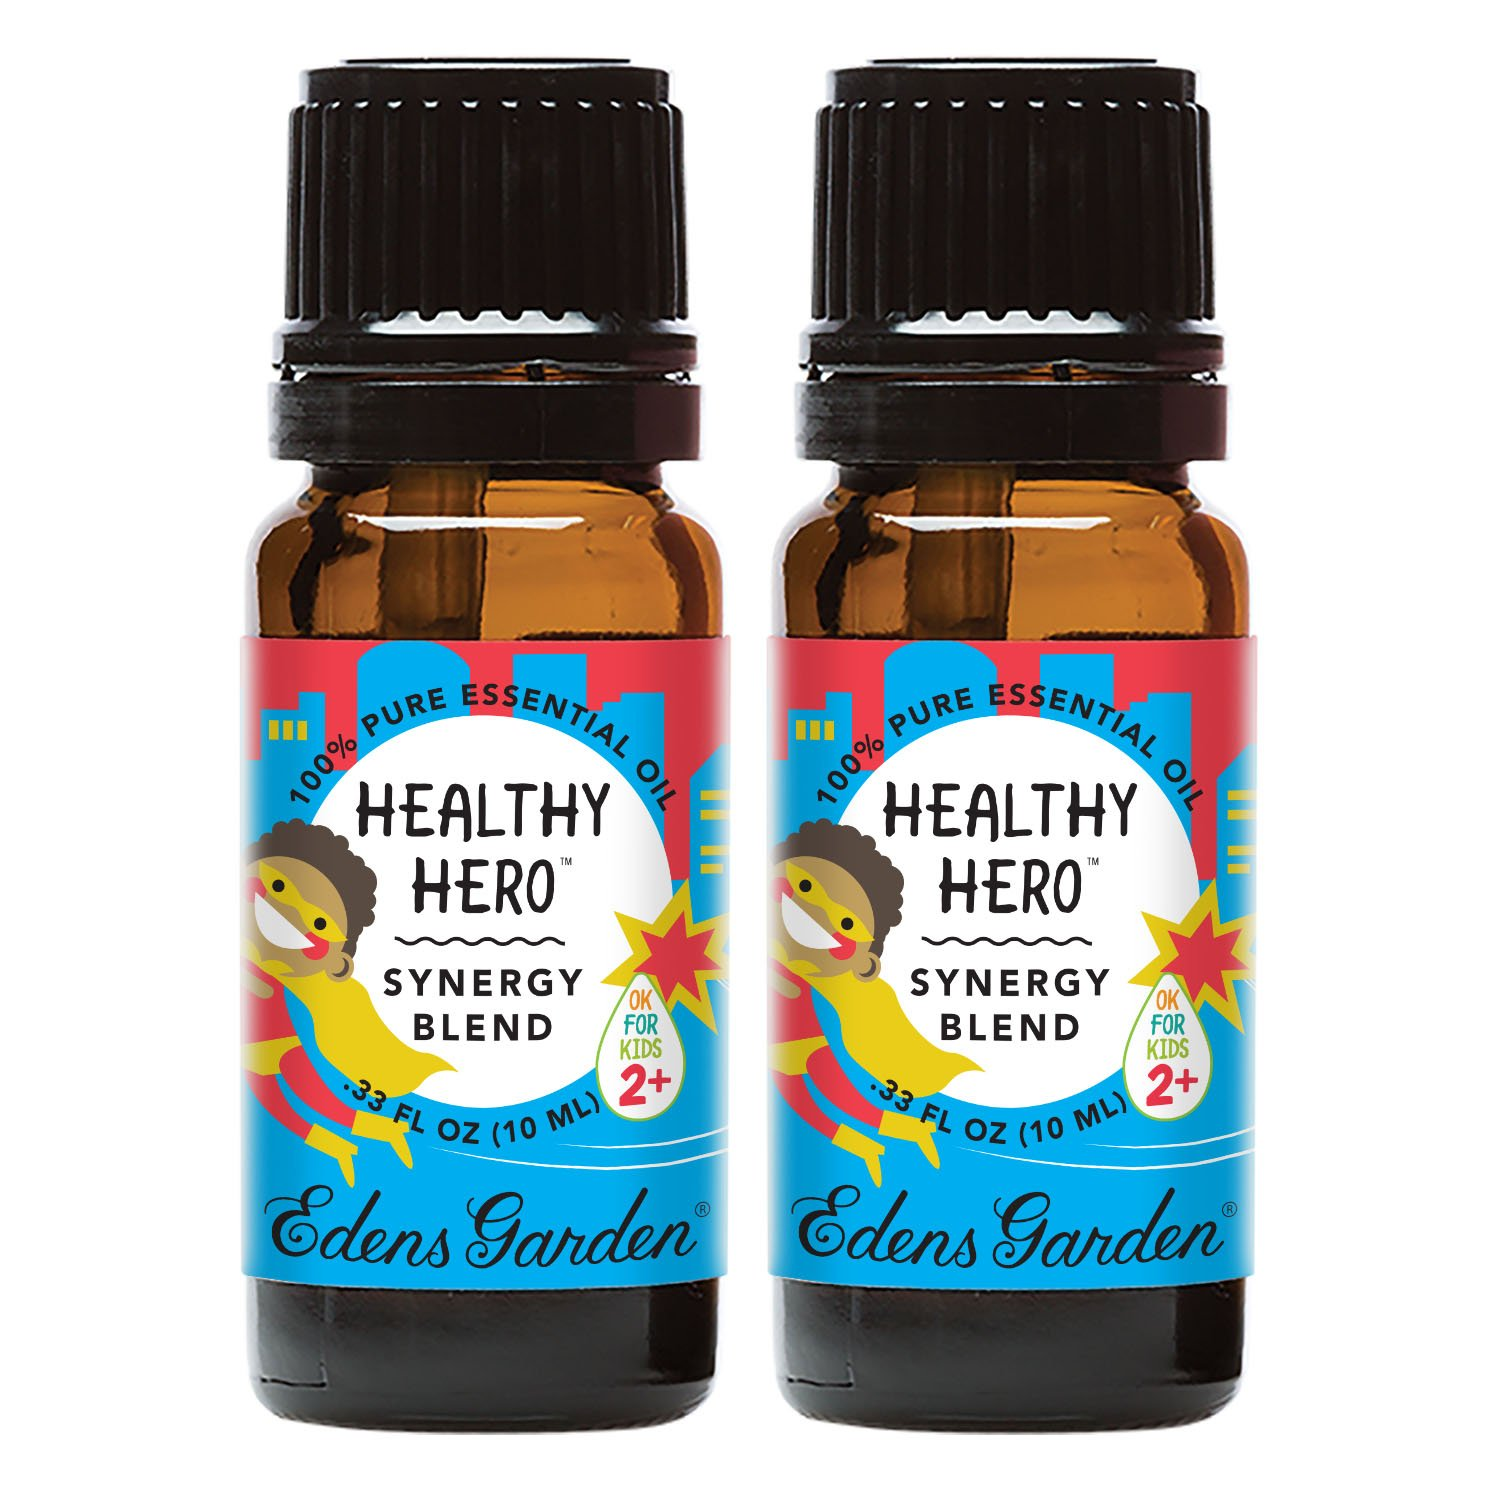 Edens Garden Healthy Hero Value Pack Synergy Blend 100% Pure Undiluted Therapeutic Grade GC/MS Certified Essential Oil